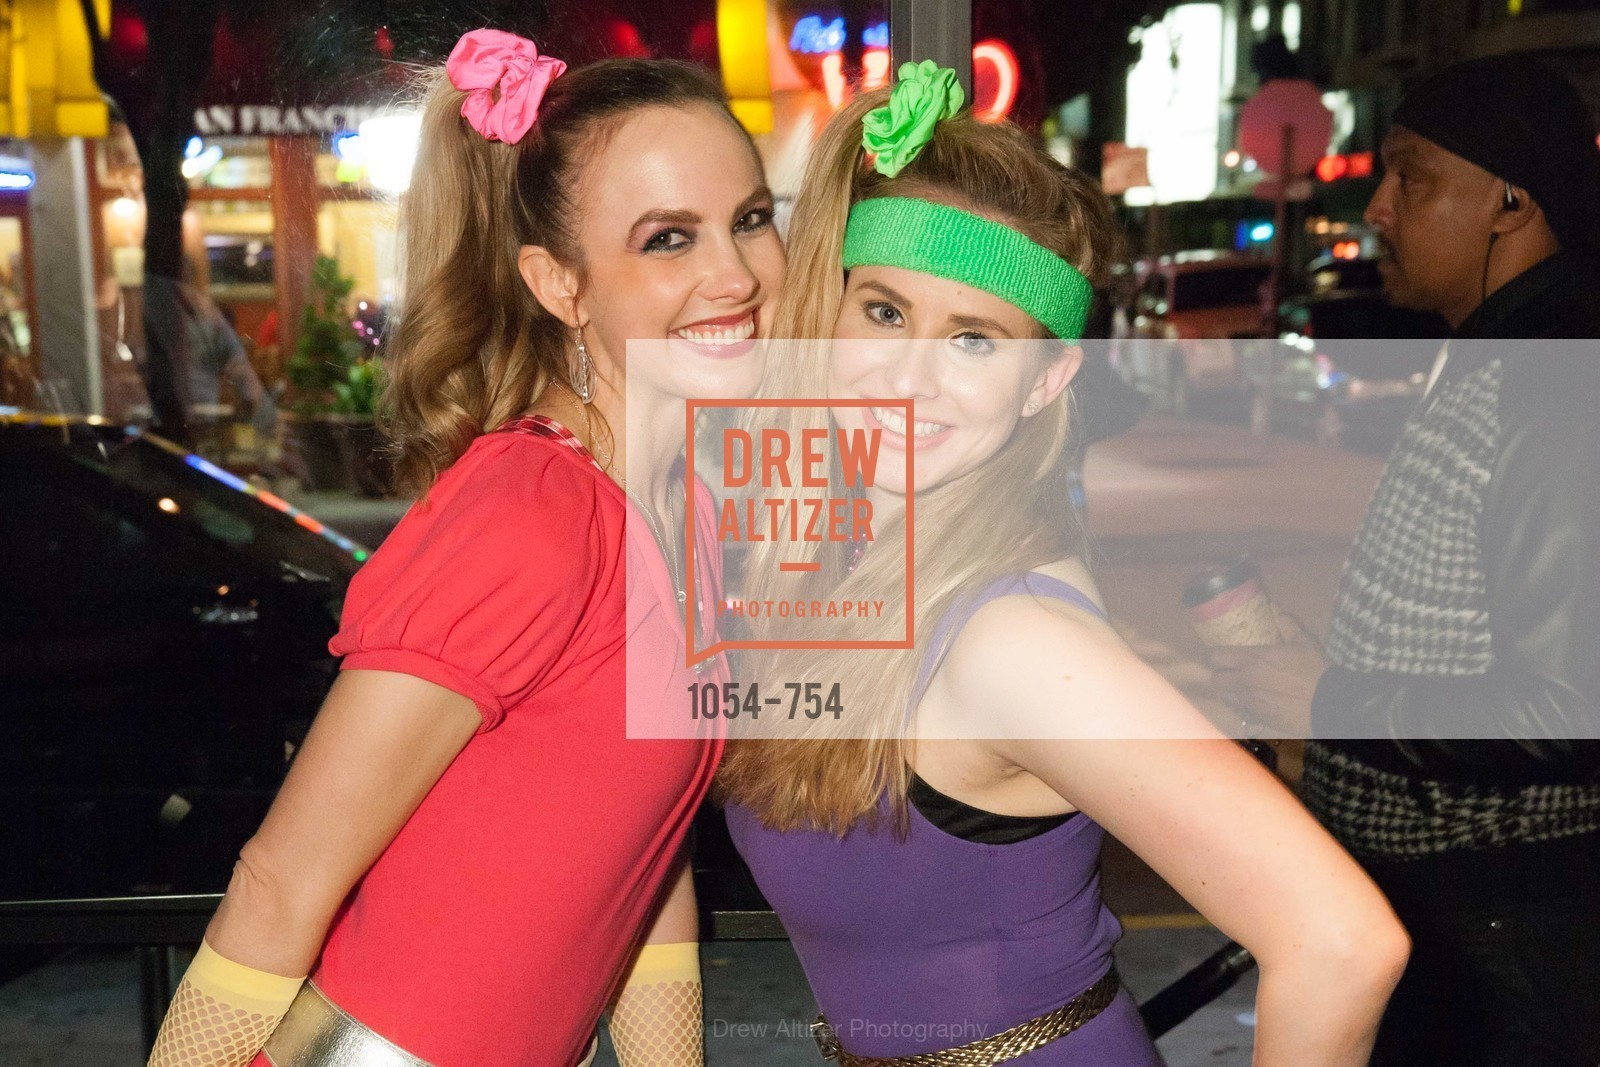 Michelle Bertino, Elizabeth Sgarrella, SPINSTERS OF SAN FRANCISCO Party Like It's 1985 Charity Party, US, May 29th, 2015,Drew Altizer, Drew Altizer Photography, full-service agency, private events, San Francisco photographer, photographer california